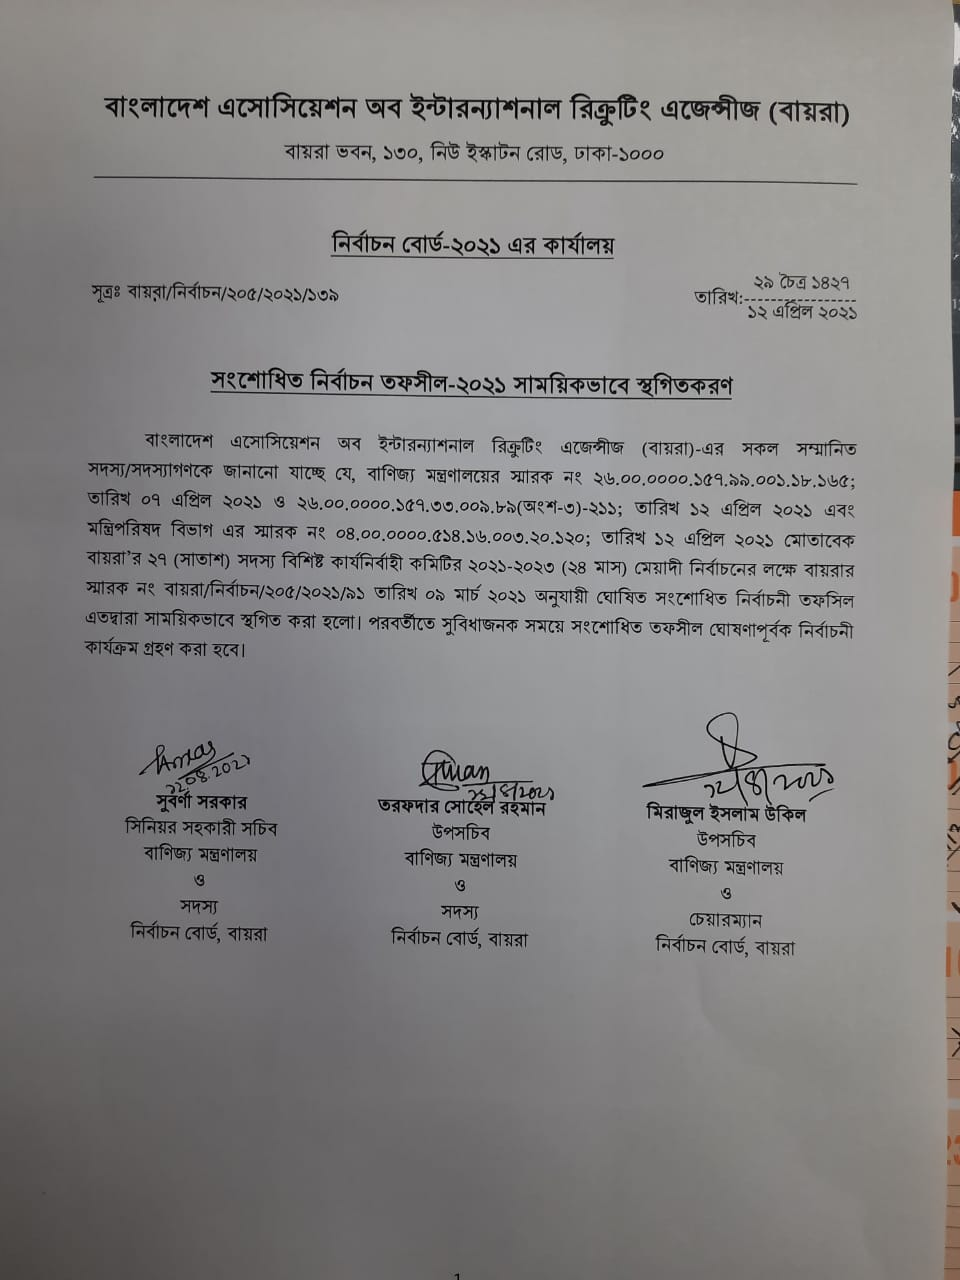 BAIRA Election Temporarily suspended